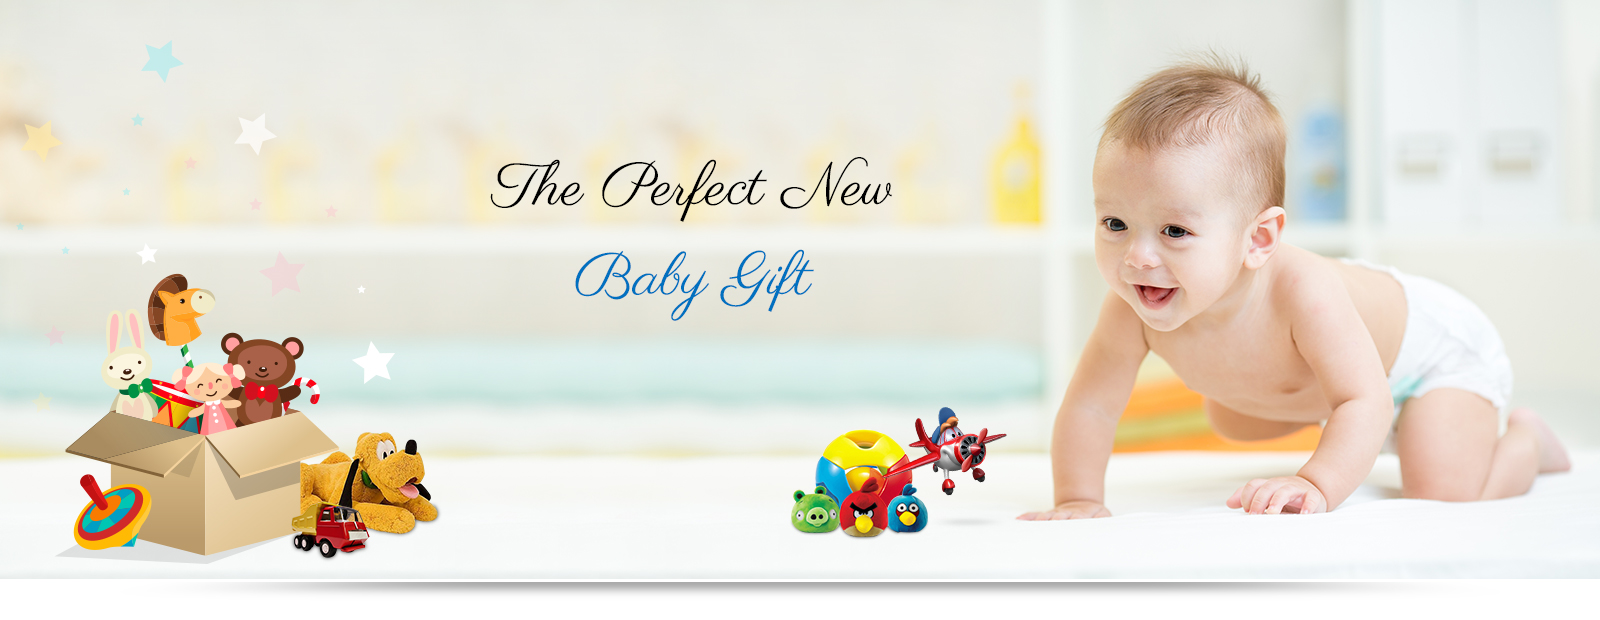 The Perfect New Baby Gift